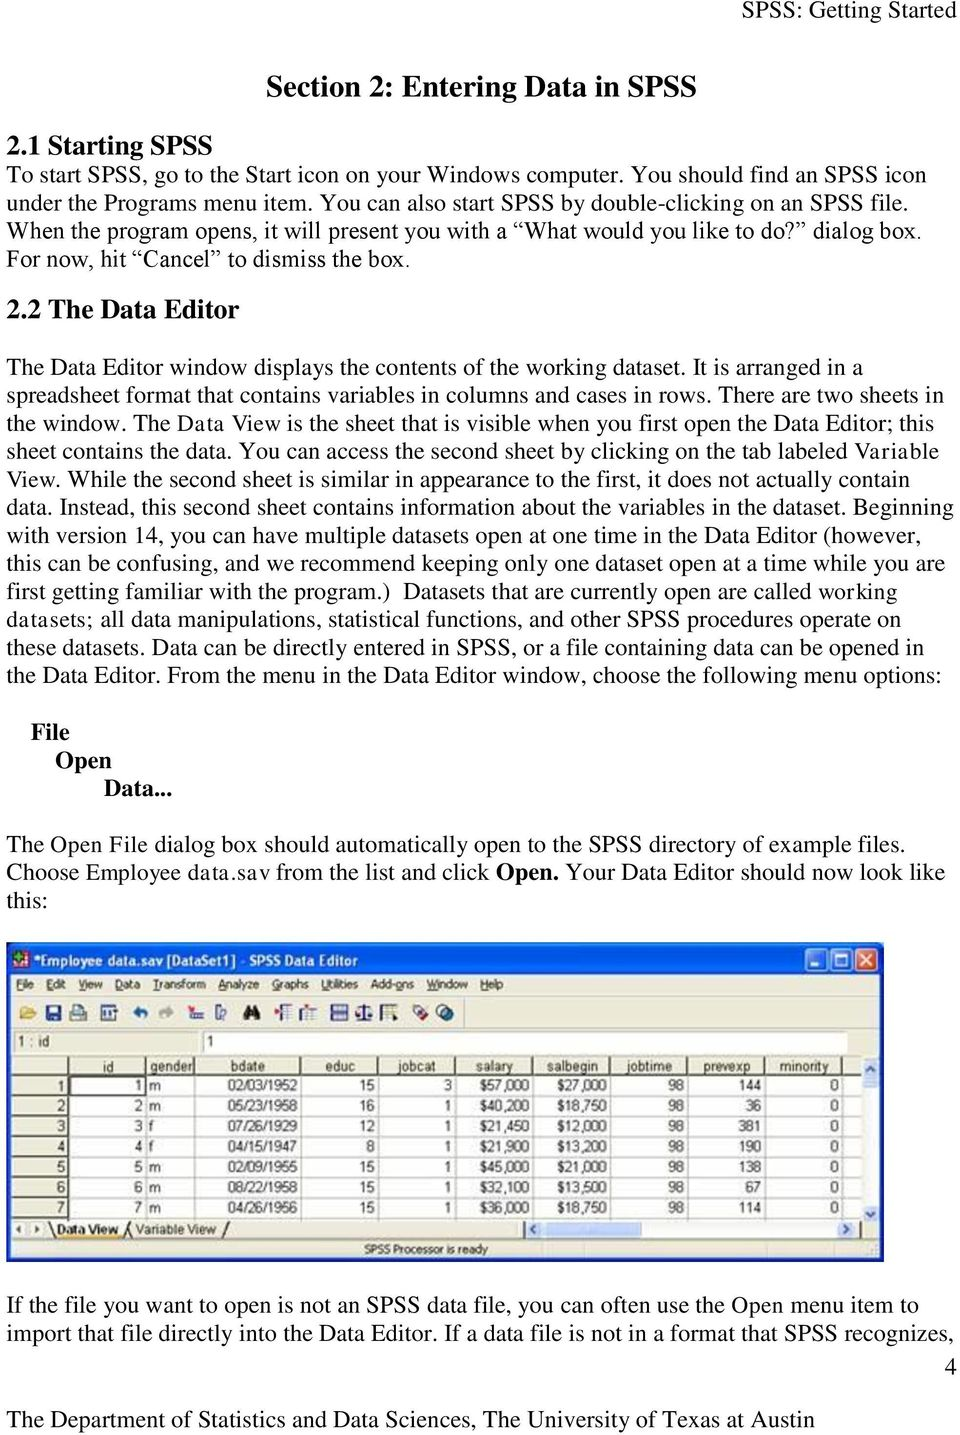 2 The Data Editor The Data Editor window displays the contents of the working dataset. It is arranged in a spreadsheet format that contains variables in columns and cases in rows.